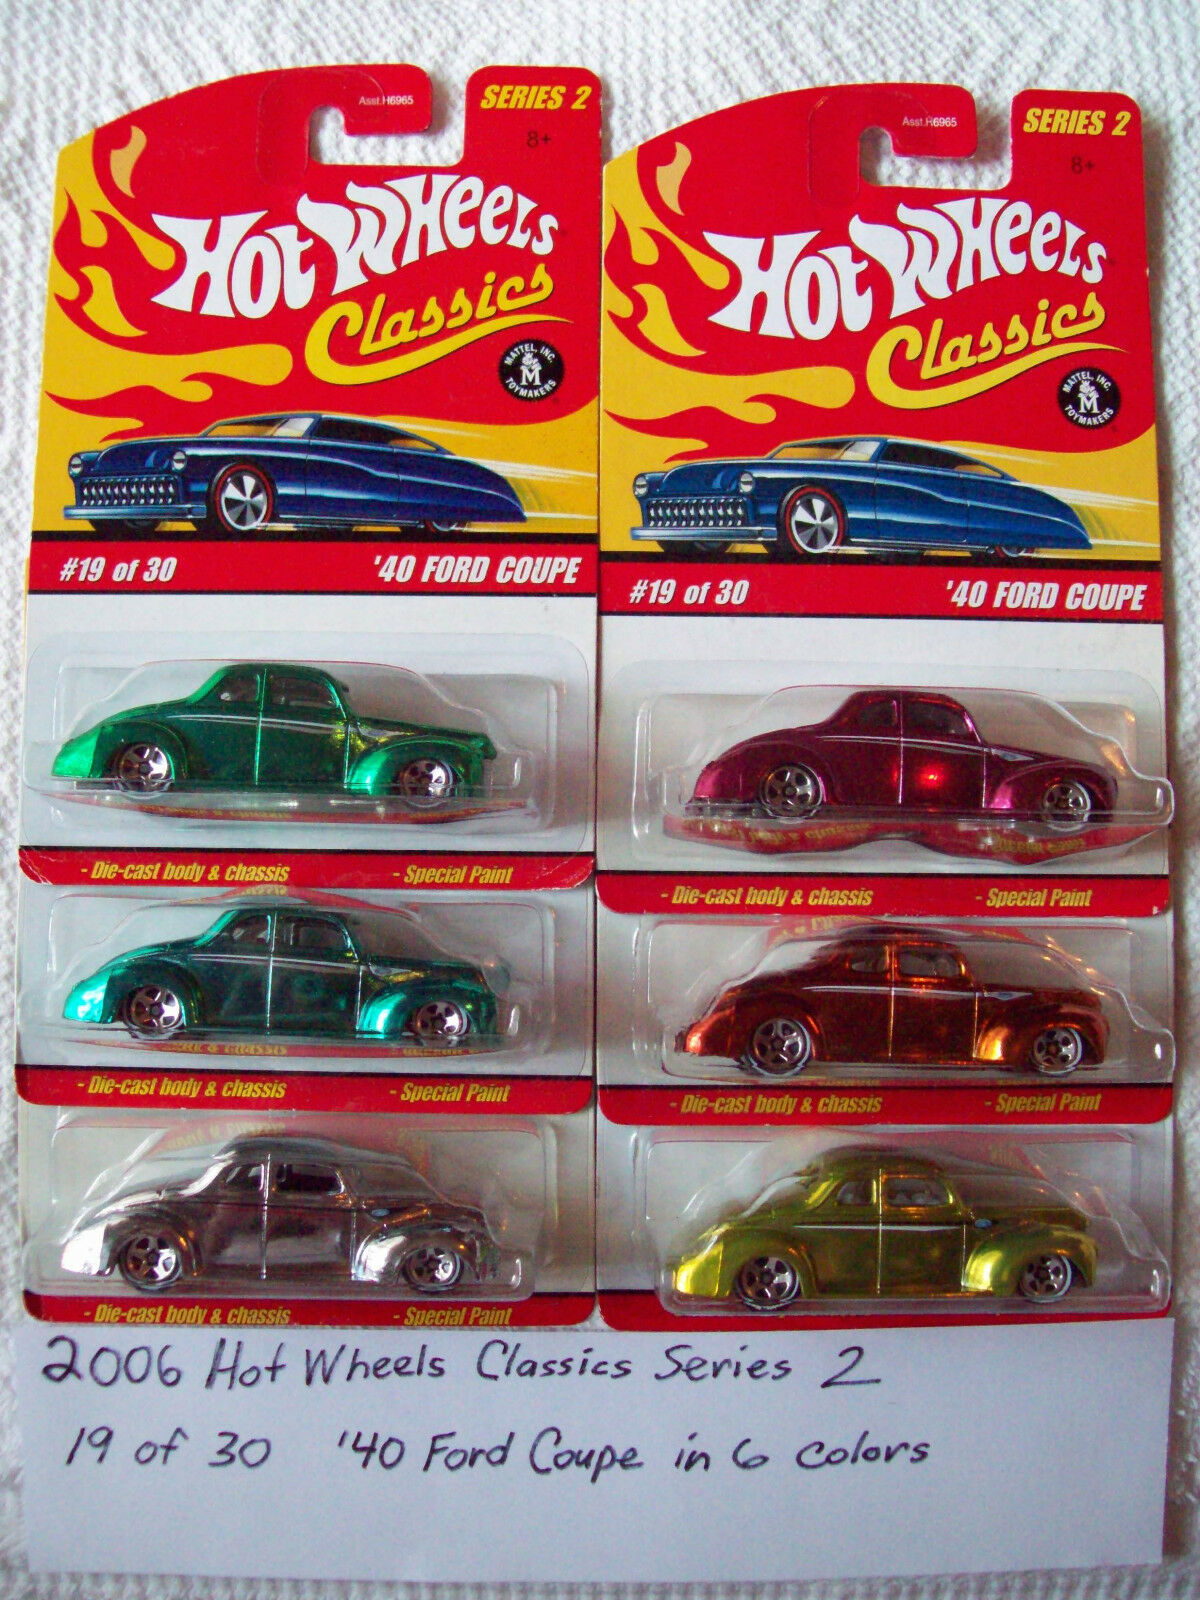 2006 Hot Wheels Classics Series 2  '40 Ford Coupe Cars in all 6 available colors